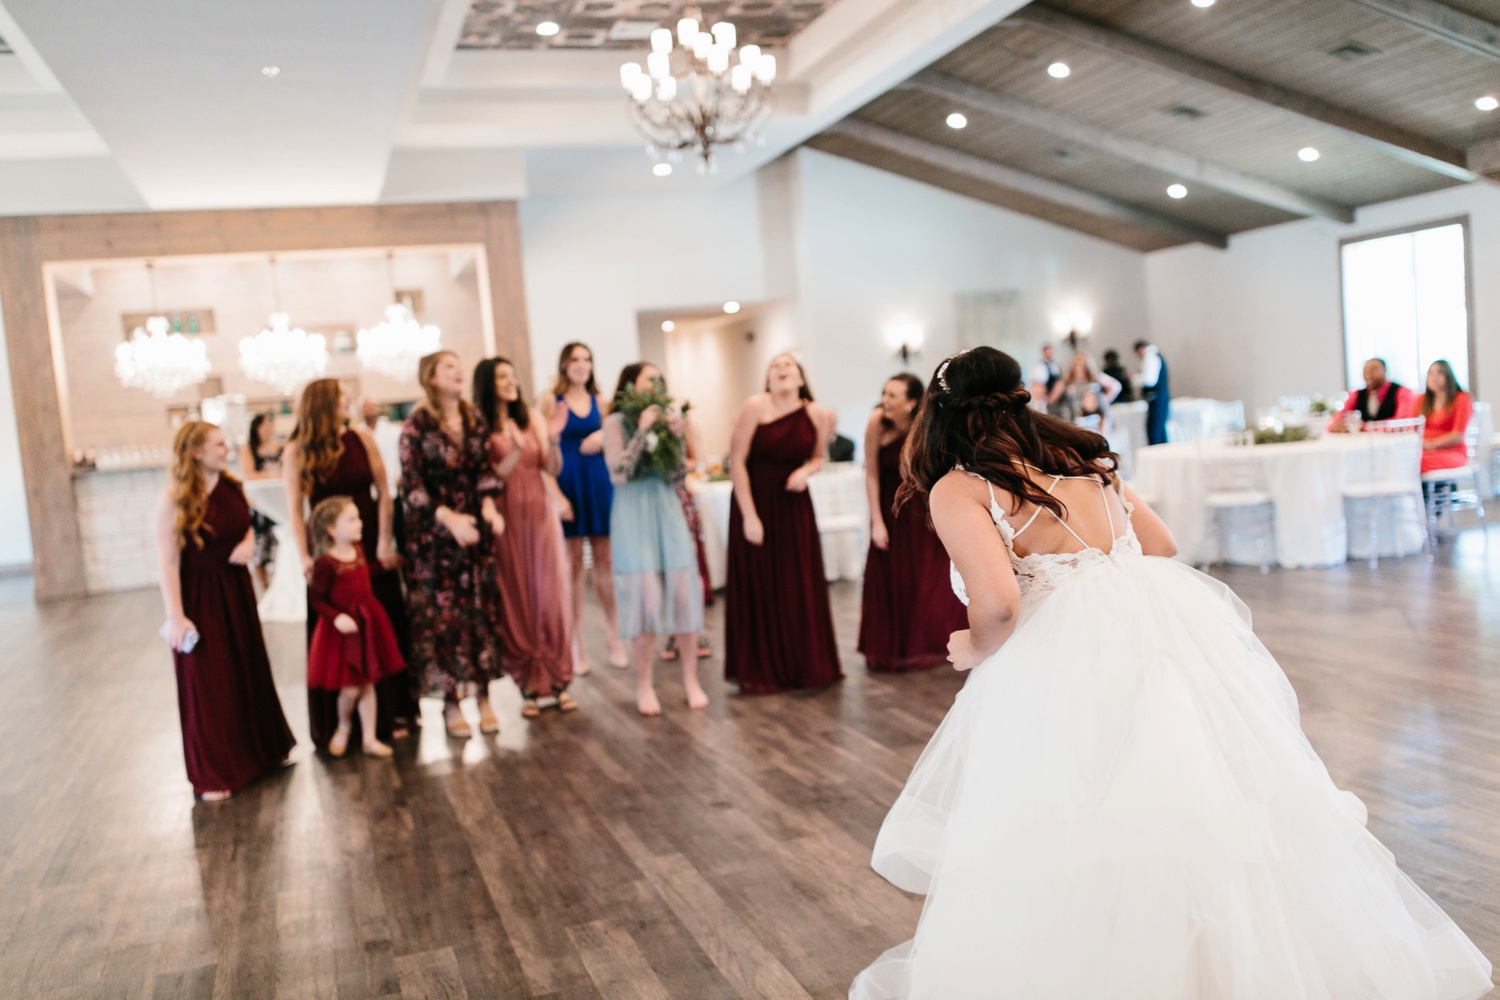 Grant + Lysette | a vibrant, deep burgundy and navy, and mixed metals wedding at Hidden Pines Chapel by North Texas Wedding Photographer Rachel Meagan Photography 177